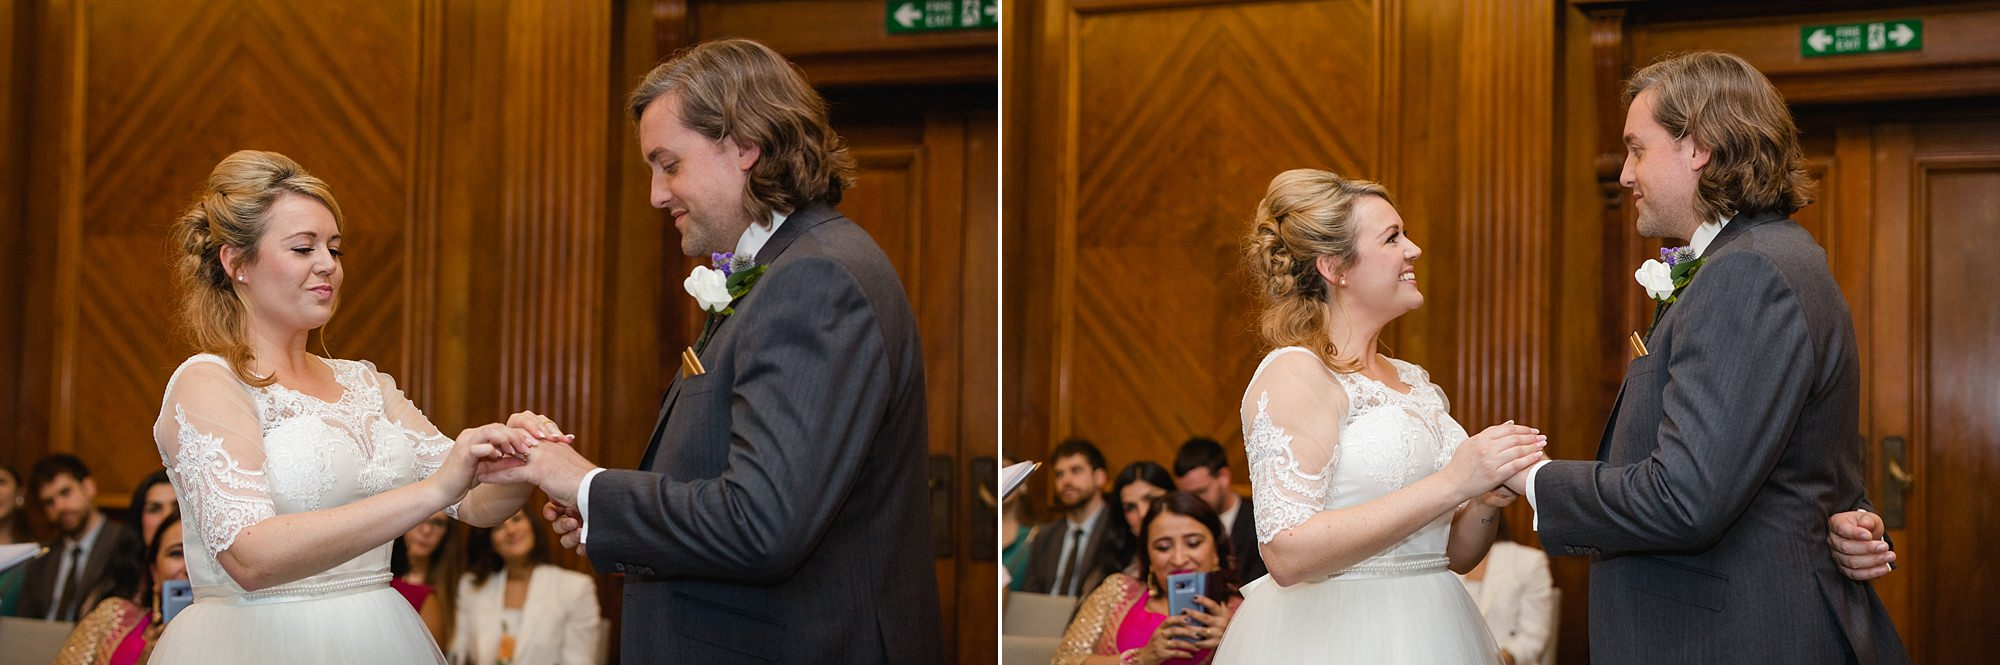 Old Marylebone Town Hall wedding photography couple exchange rings